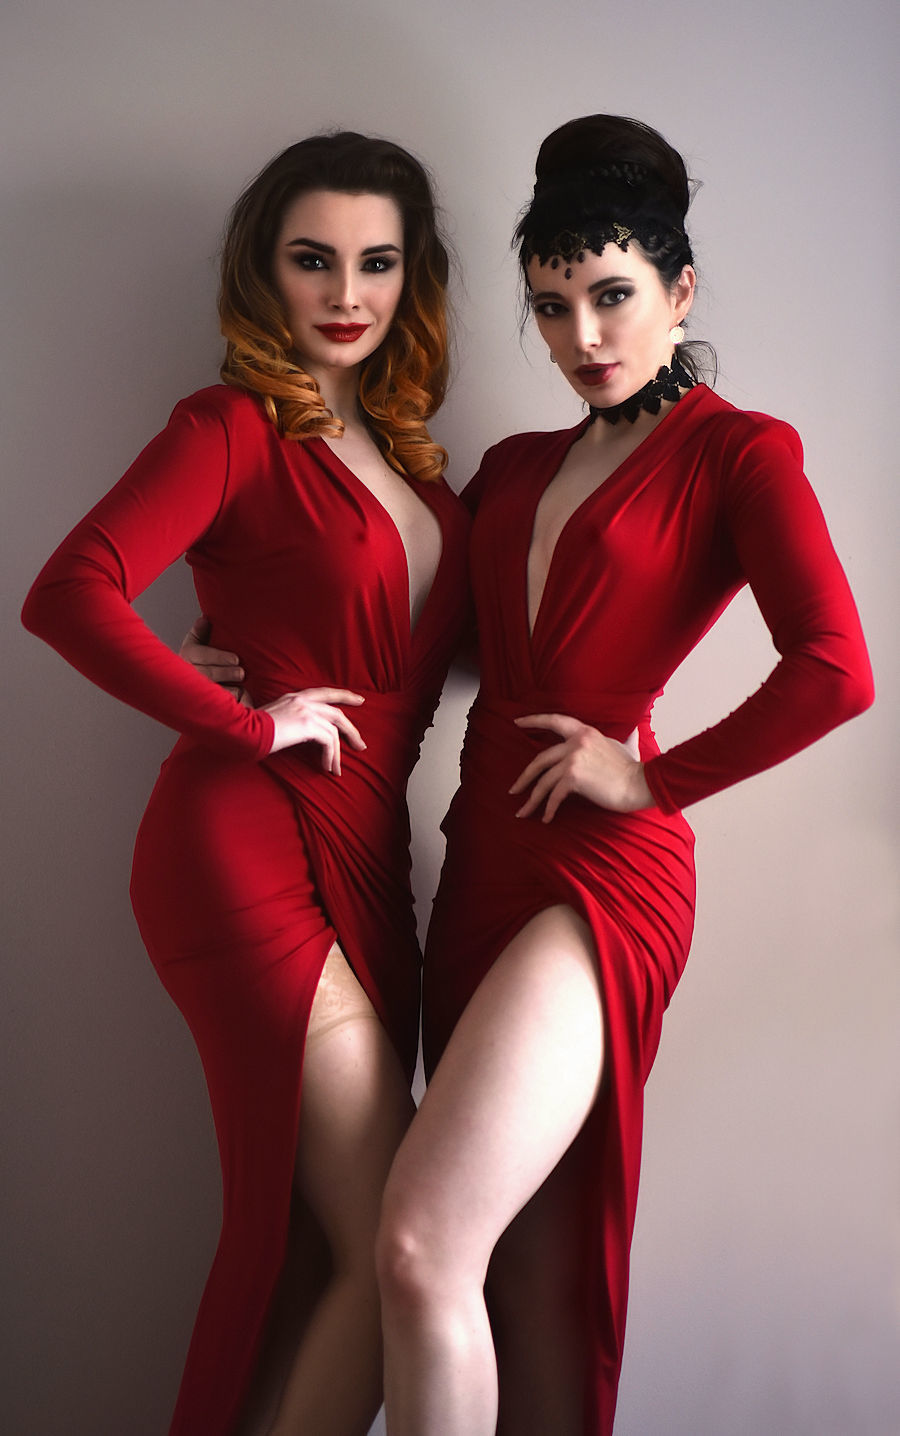 RED / Photography by shutterman / Uploaded 14th December 2020 @ 12:51 AM